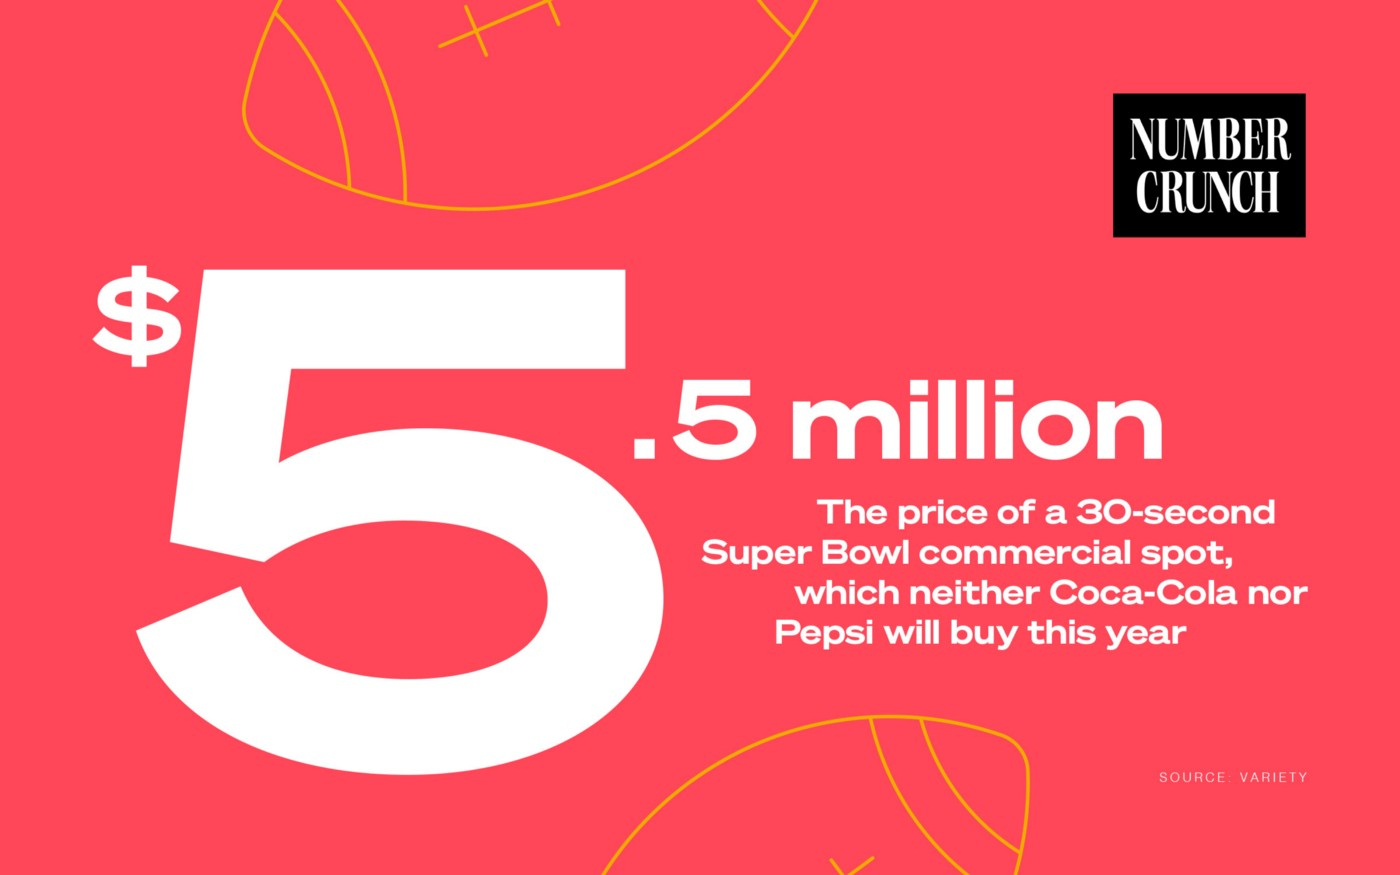 """Art for Number Crunch with the text """"$5.5 million—The price of a 30-sec Super Bowl commercial spot"""" with football design"""